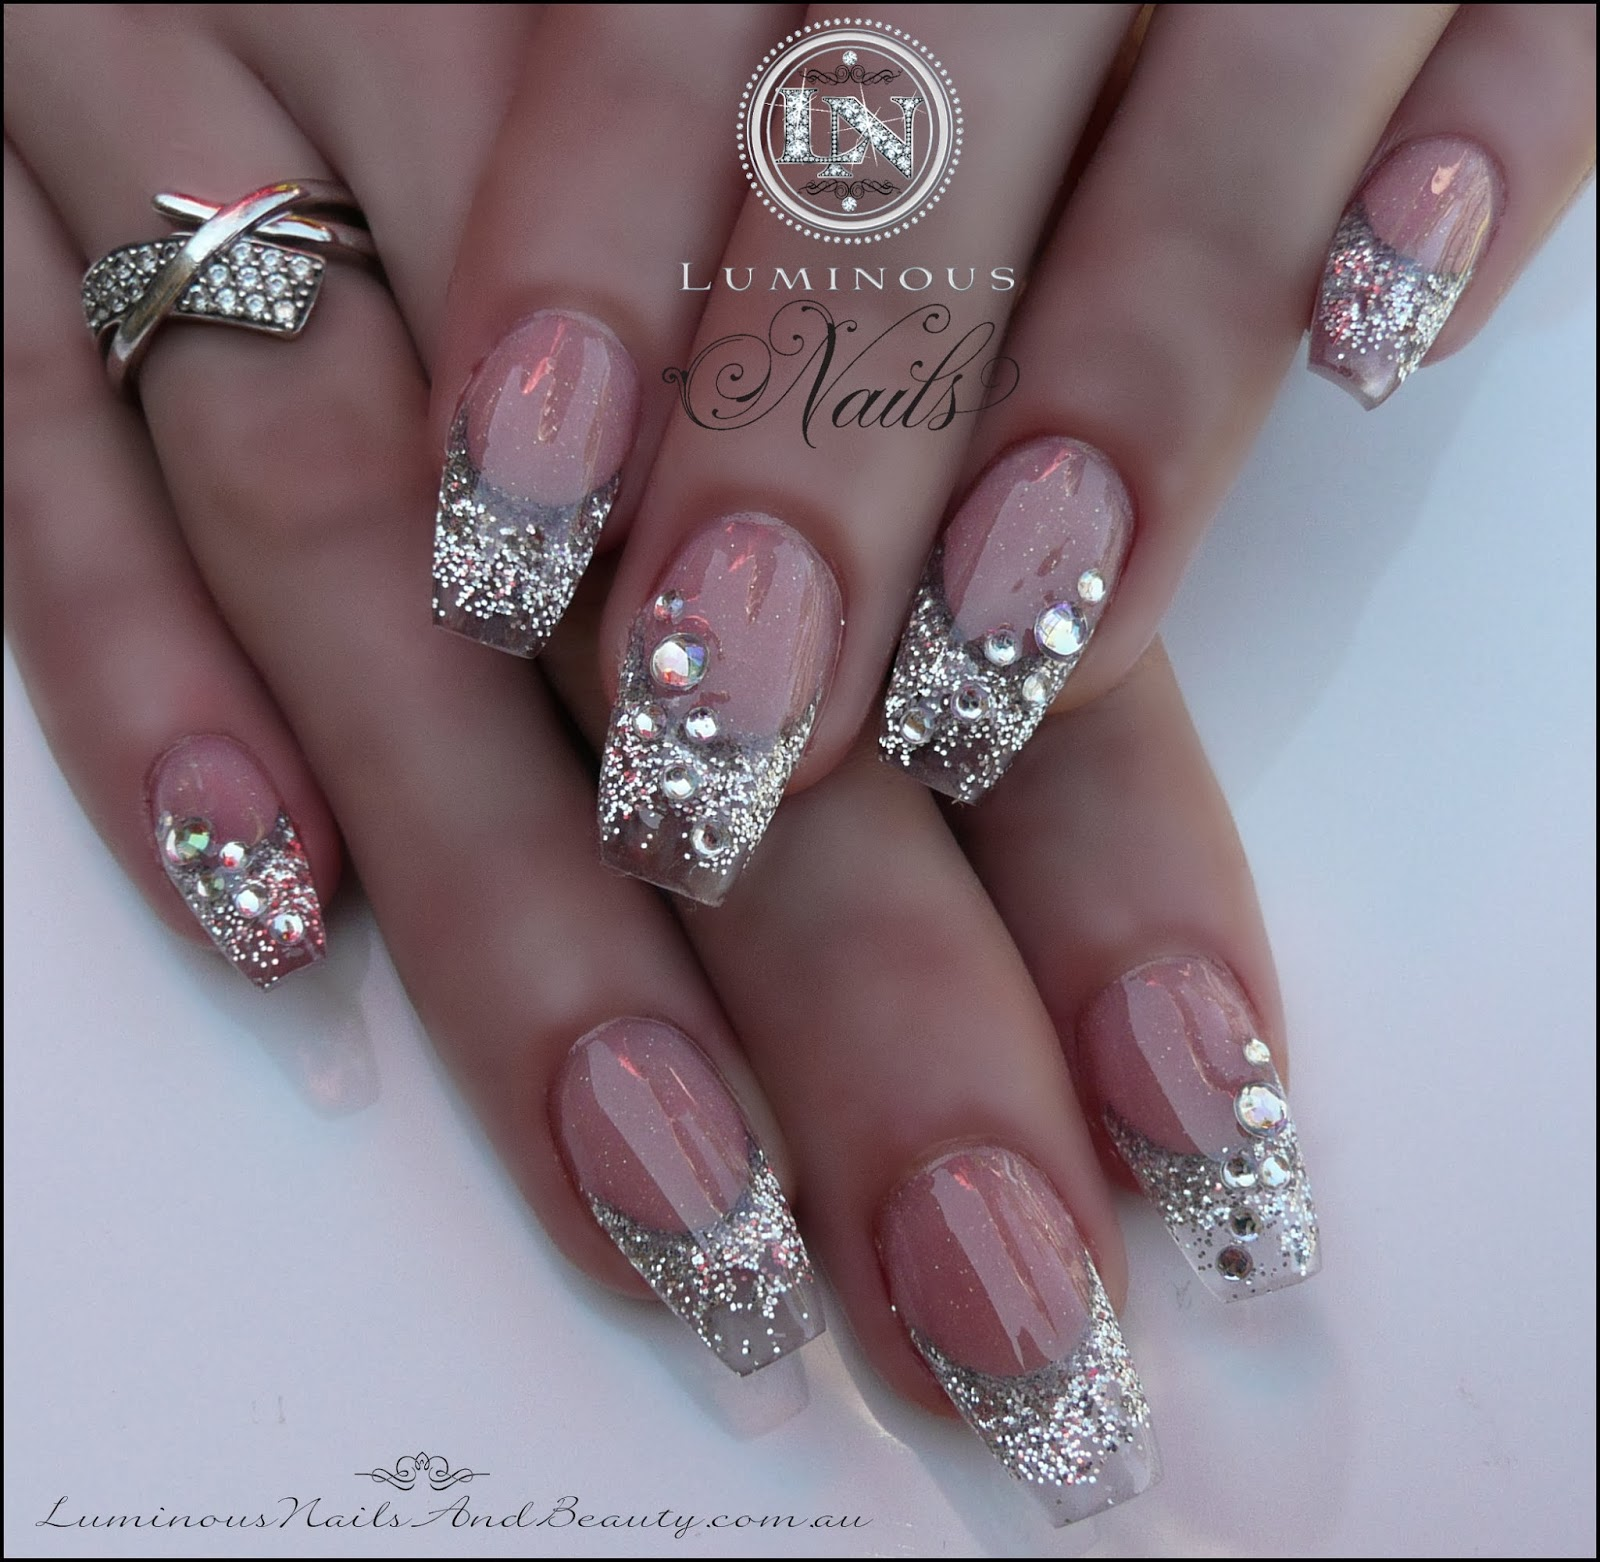 Luminous Nails: November 2013